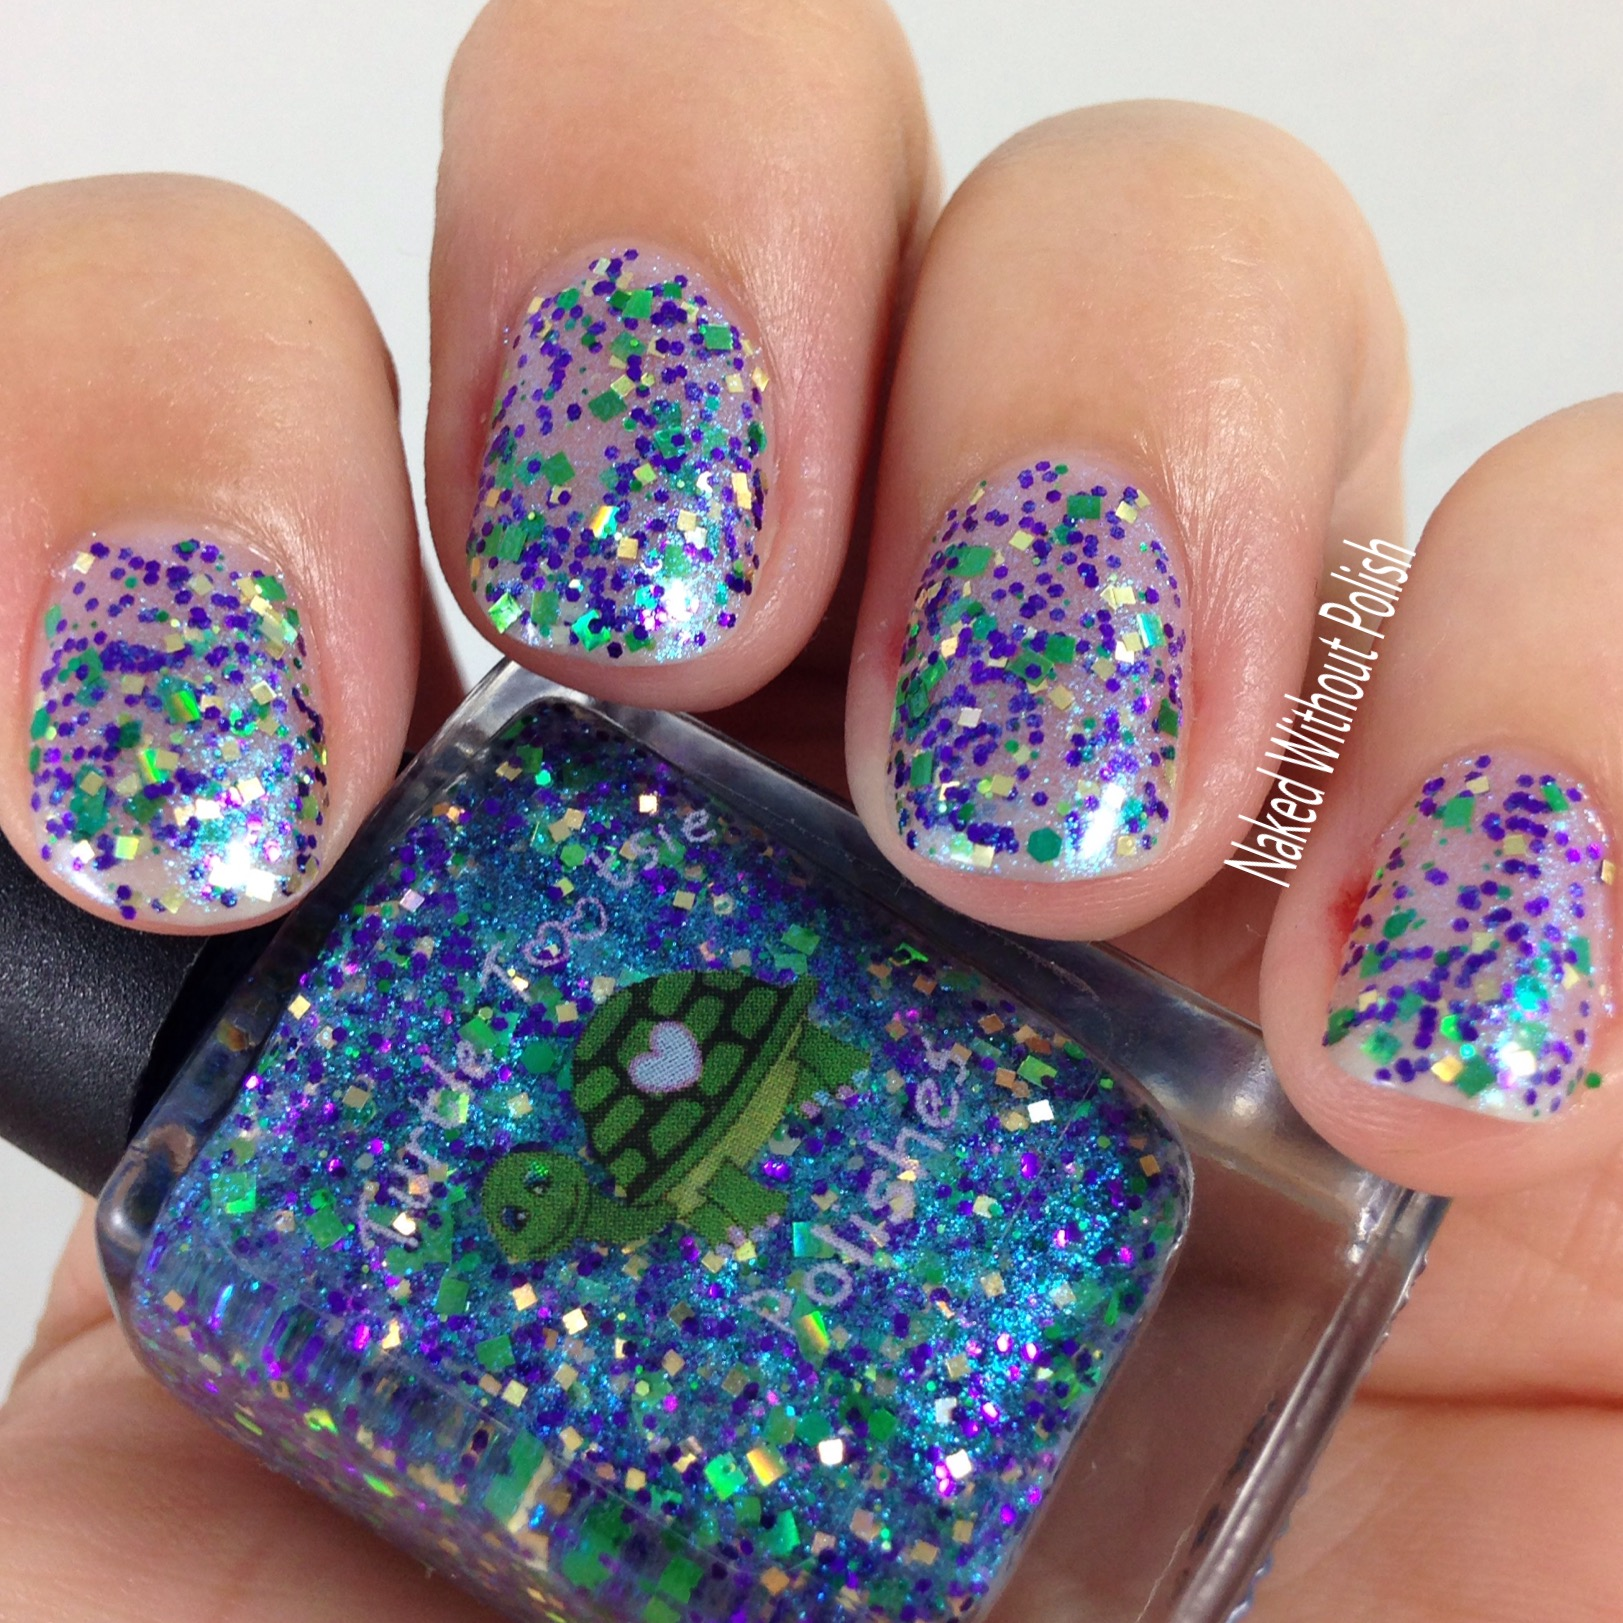 Turtle-Tootsie-Polishes-Elvish-7